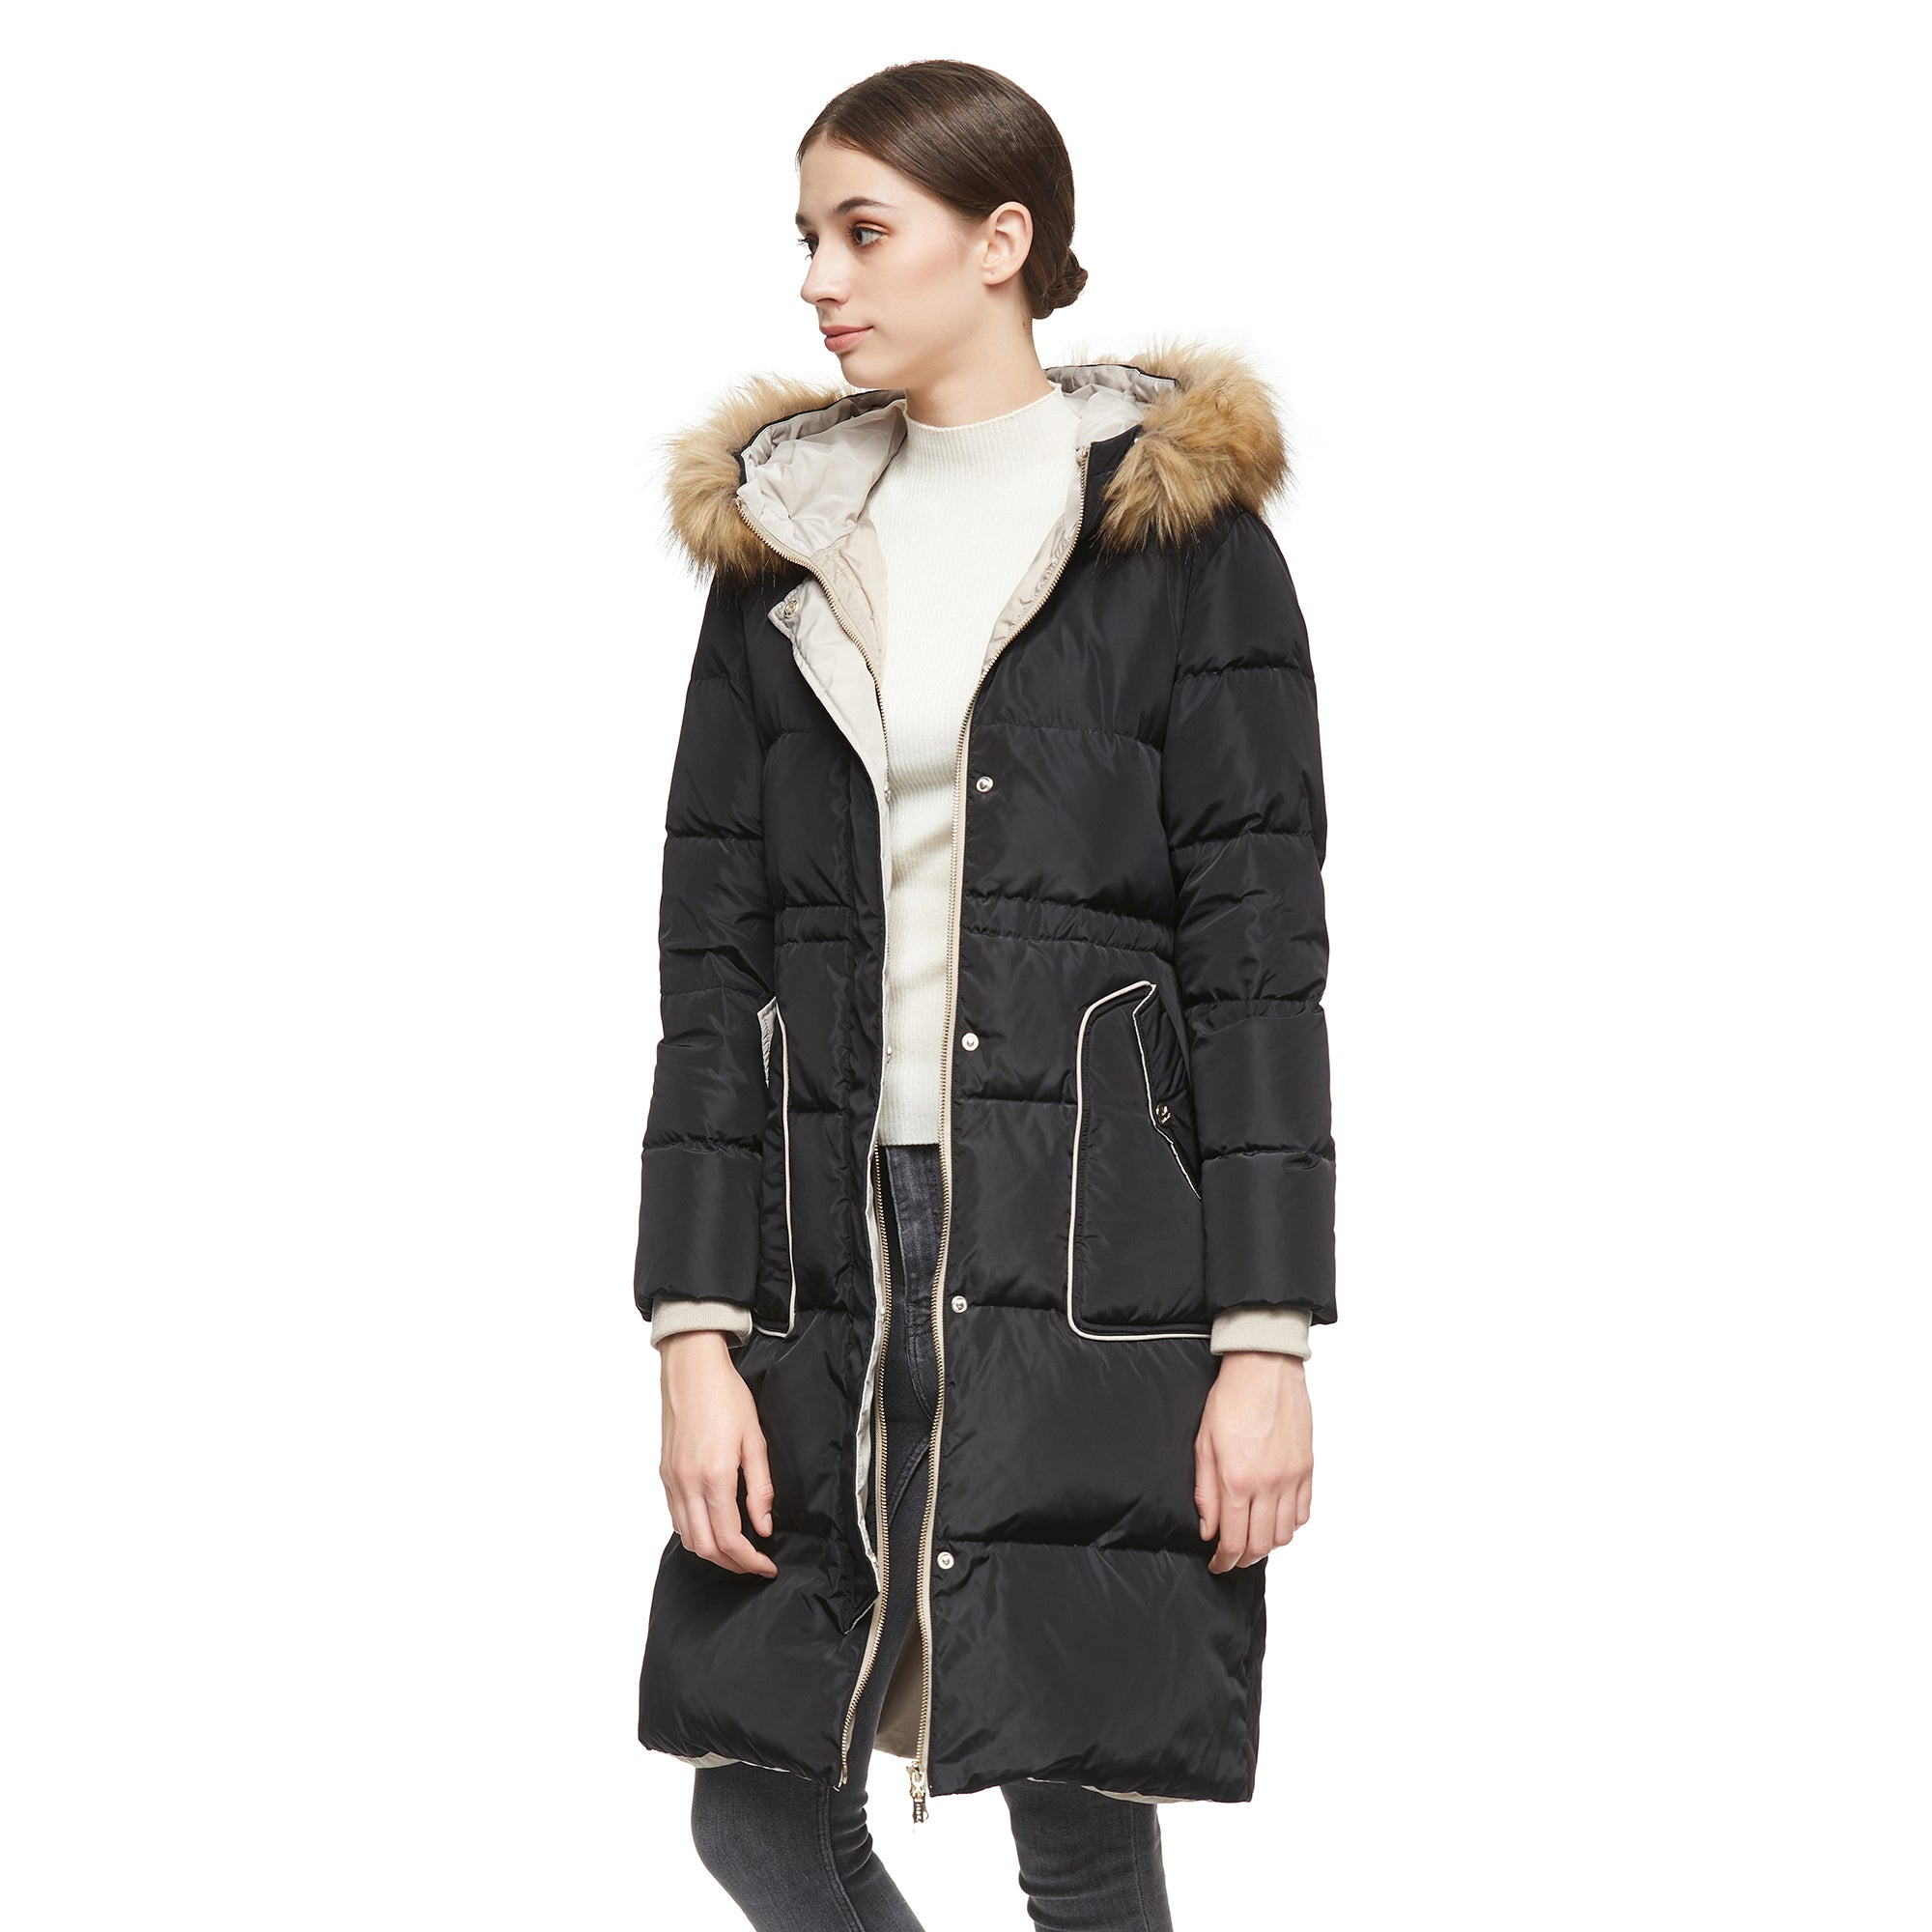 Orolay Women's Winter Casual Mid Length Down Coat with Hood YRF8021Q